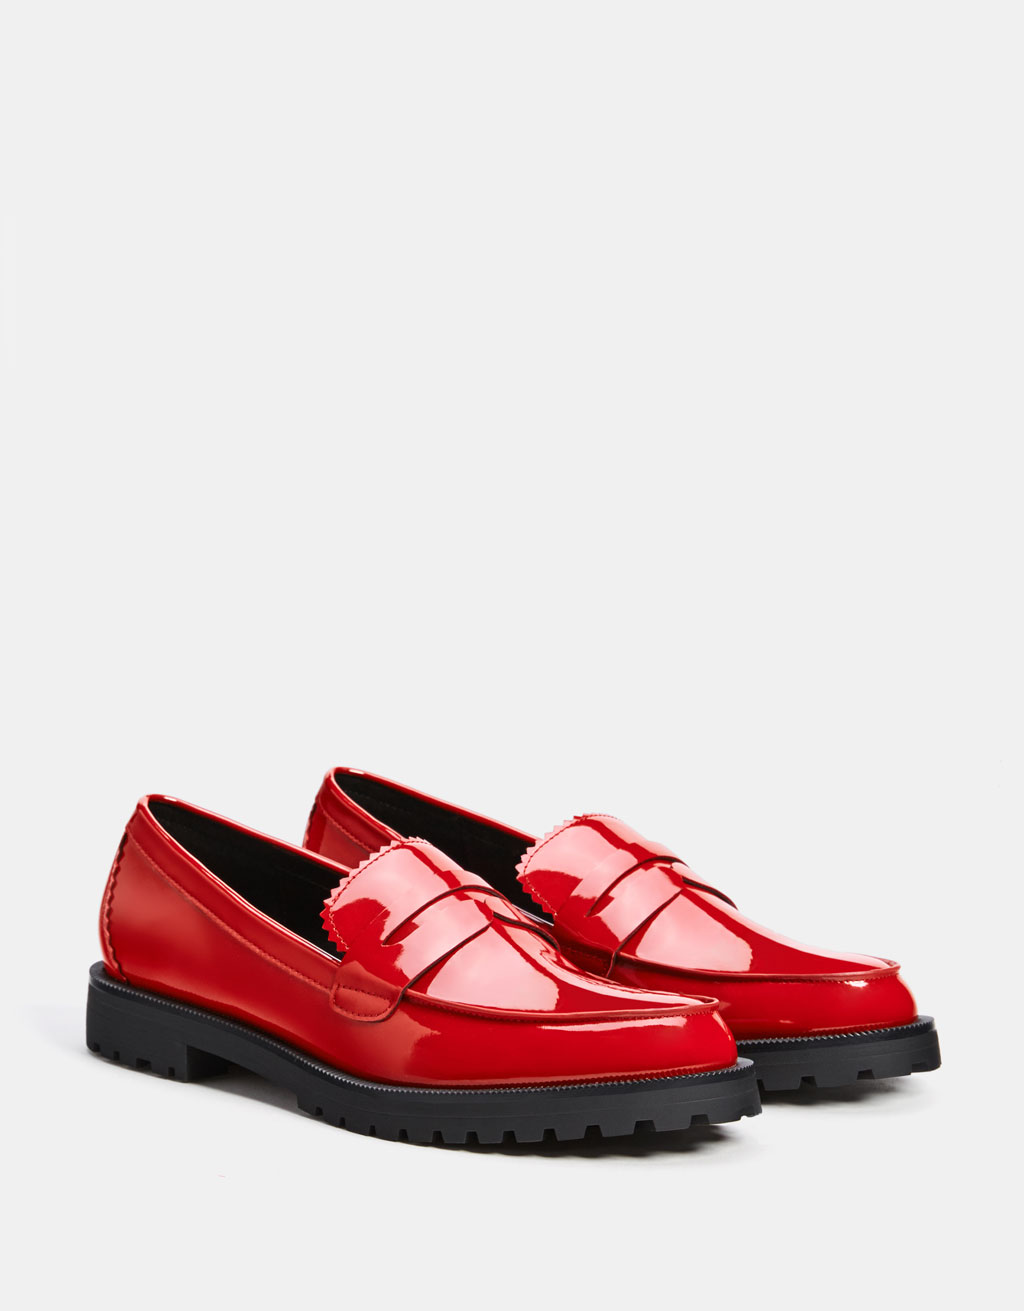 Red loafers with a faux patent finish